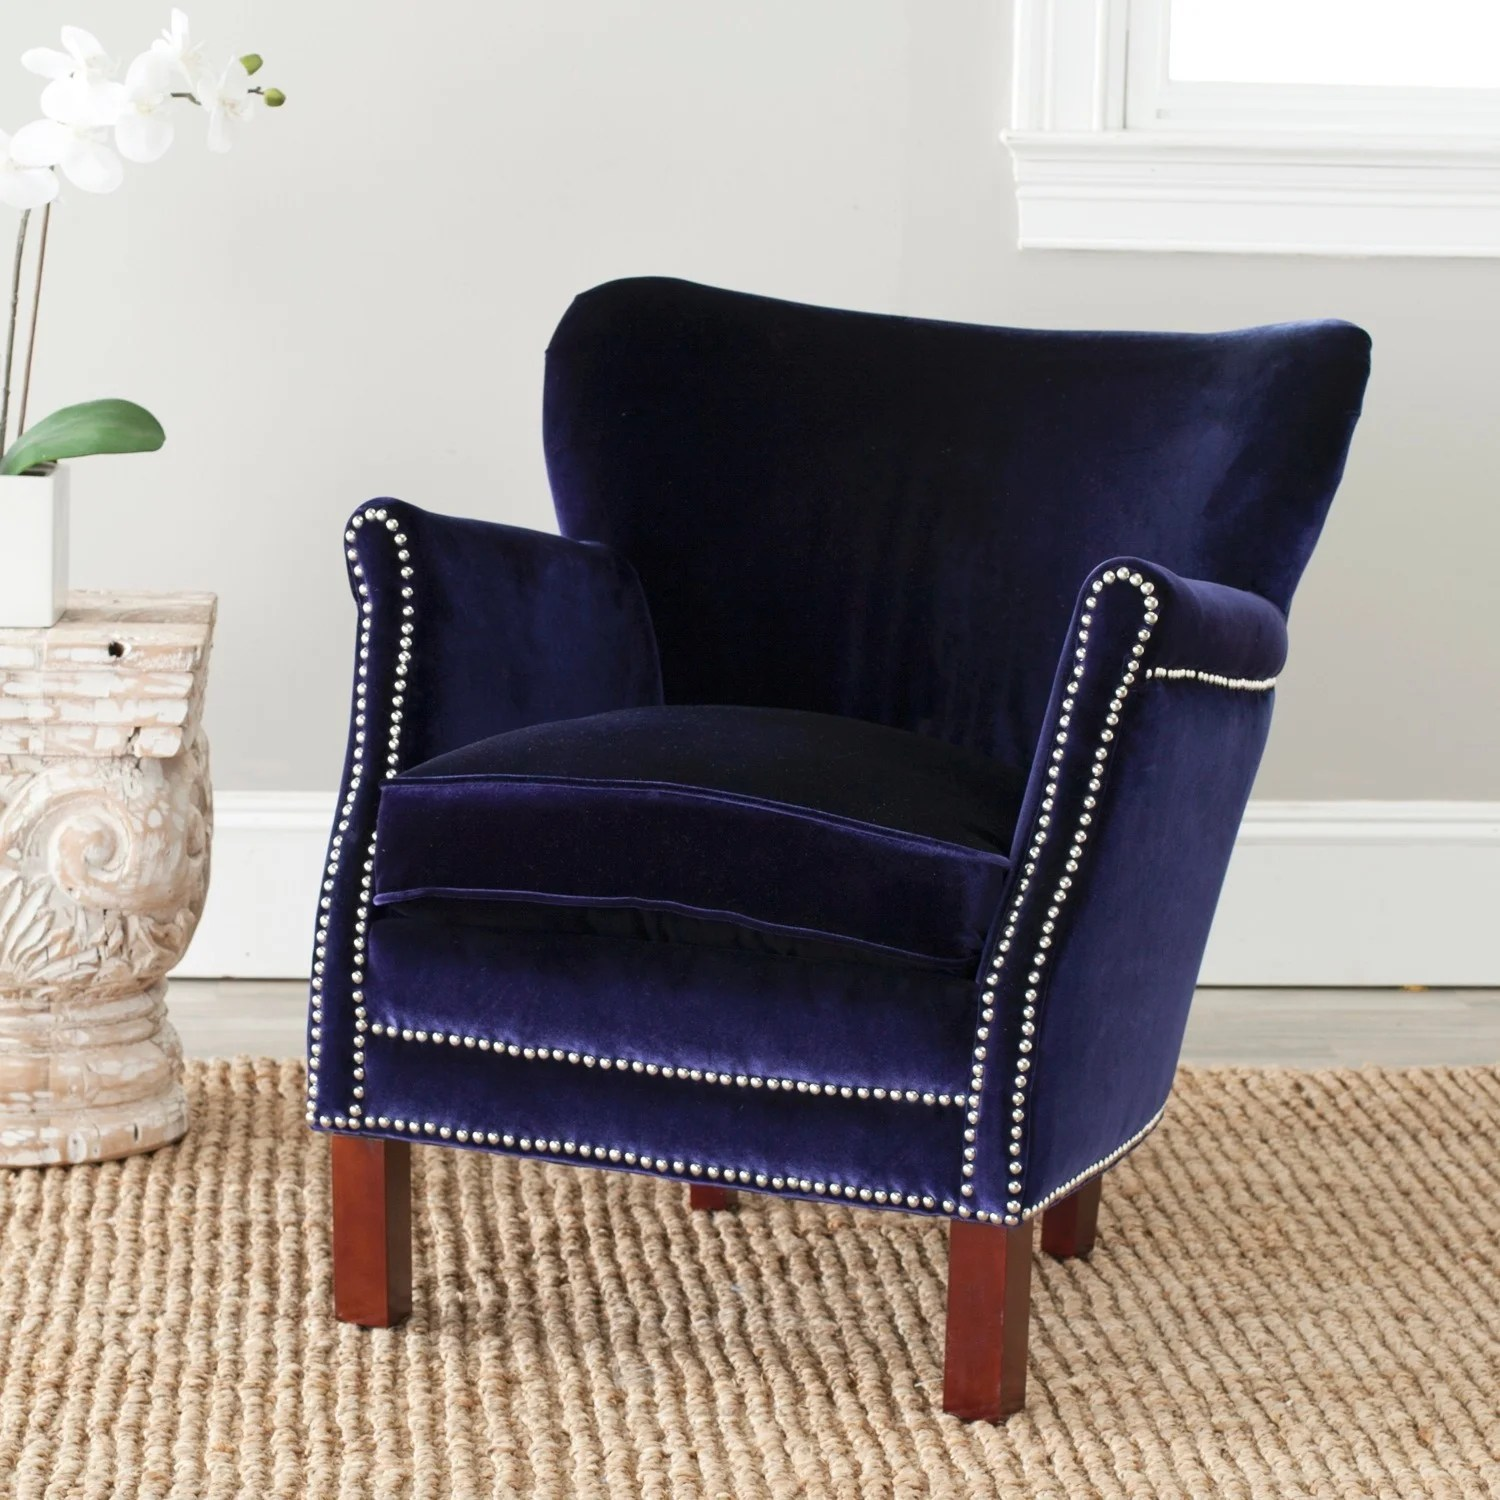 Royal Blue Chair Details About Safavieh Posh Royal Blue Arm Chair 26 6